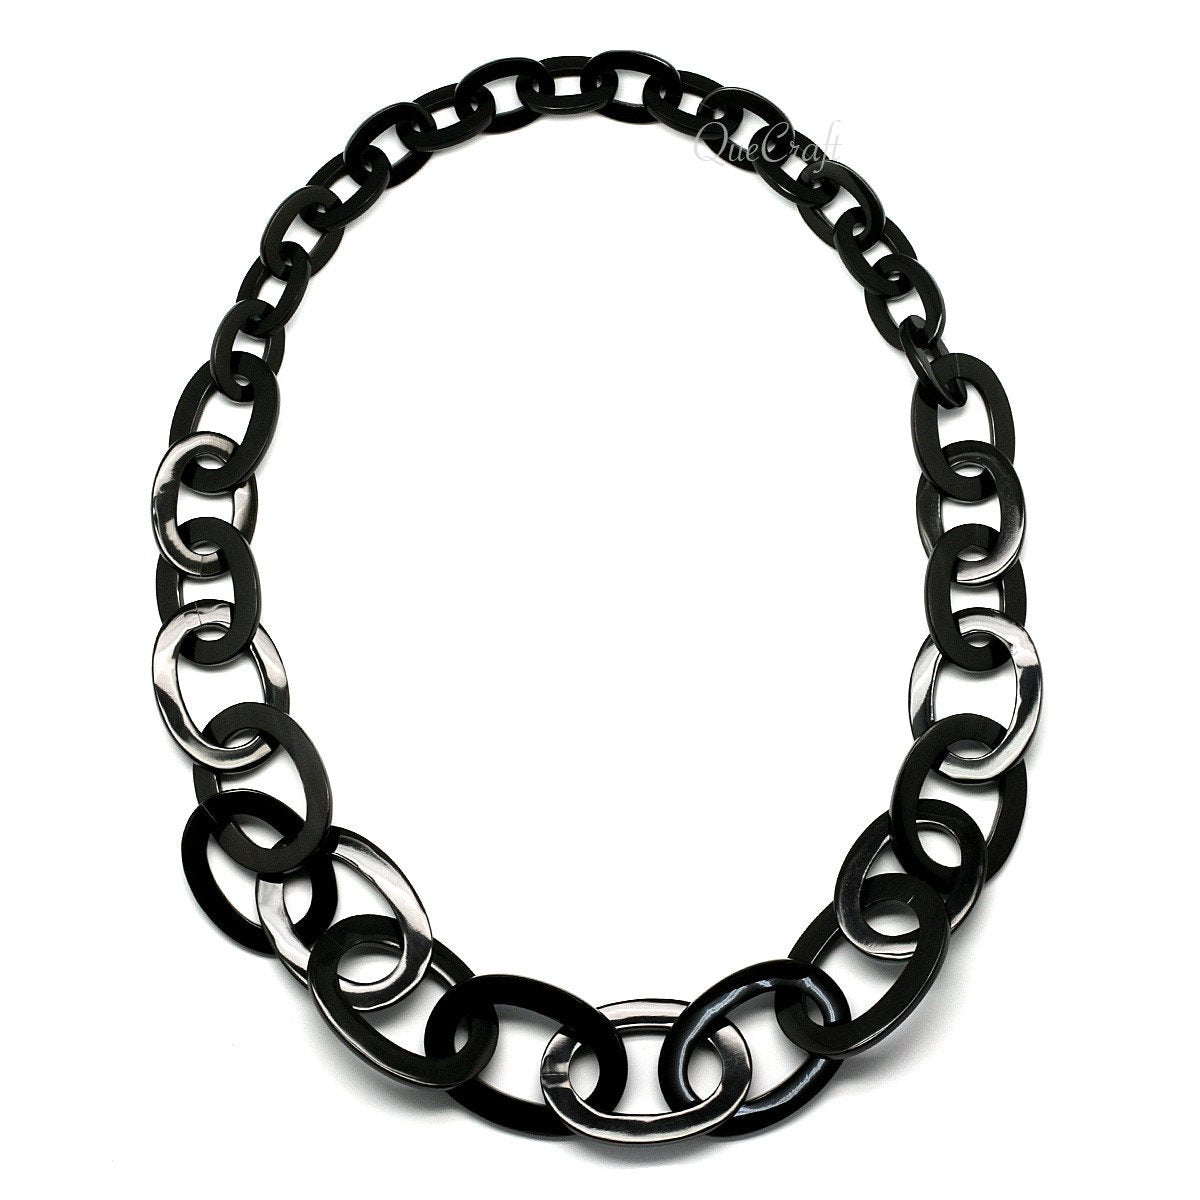 Horn Chain Necklace #10483 - HORN.JEWELRY by QueCraft